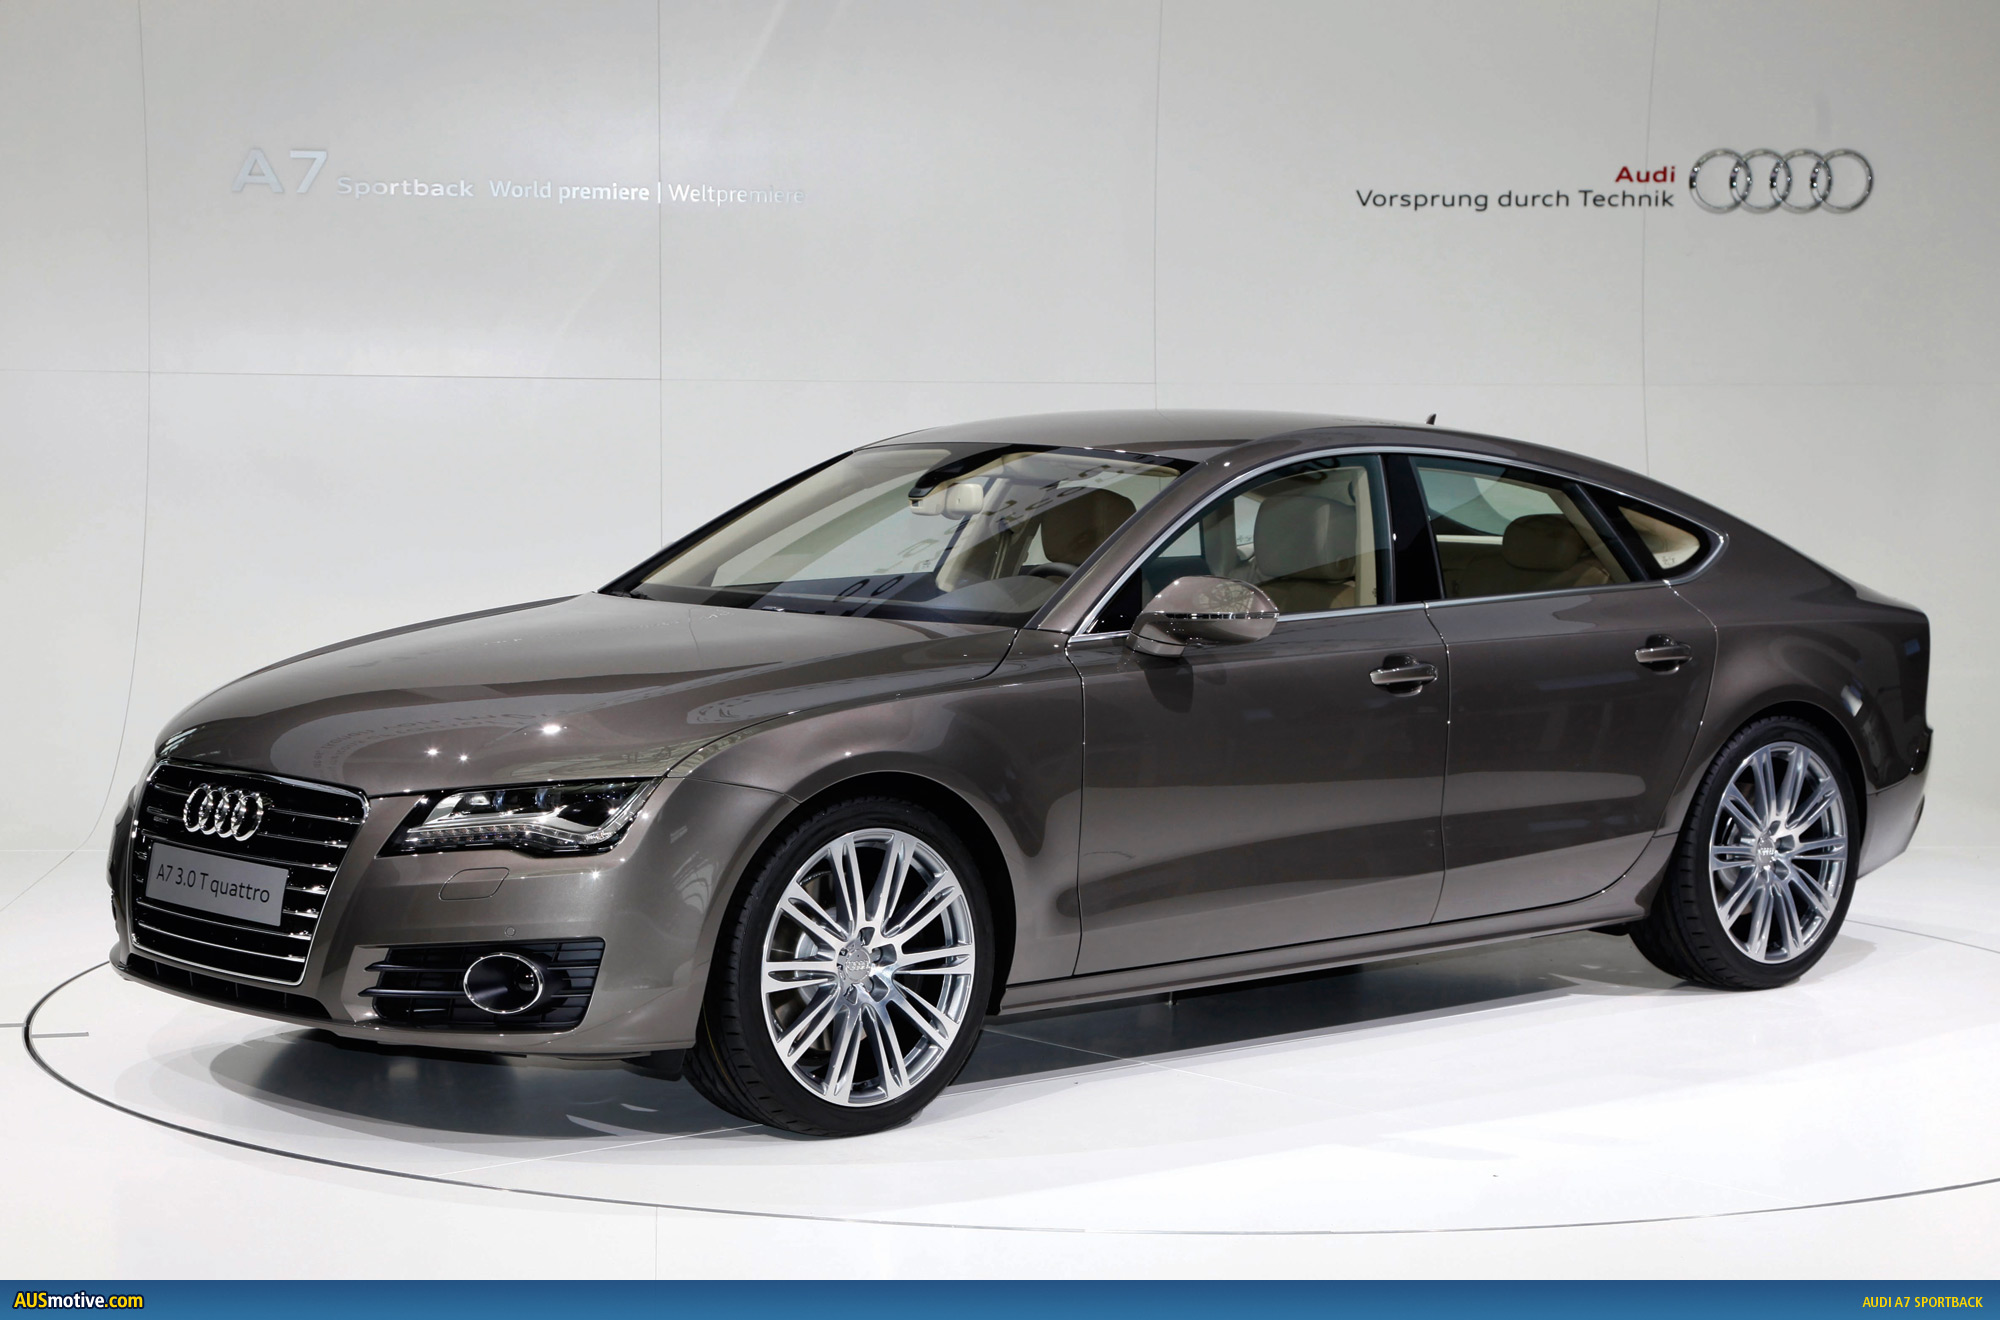 2011 audi a6 brochure australian pricing pdf